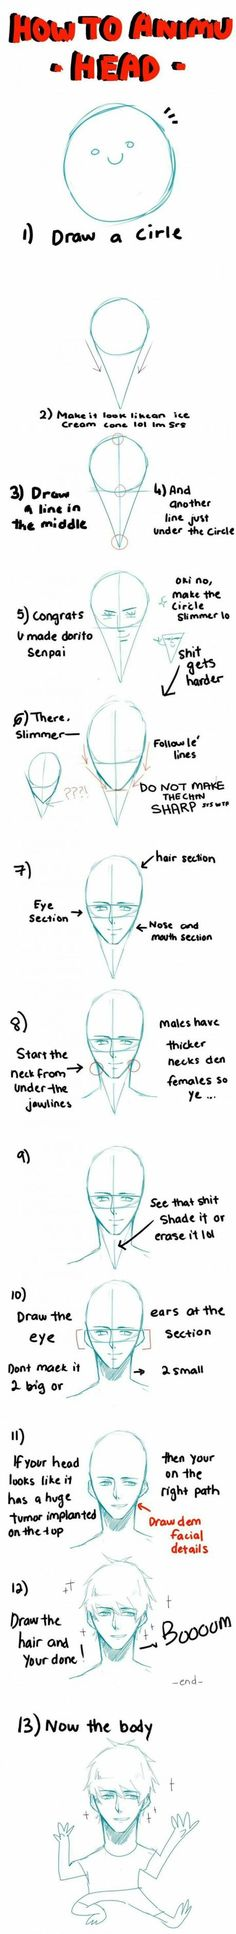 How to draw anime(pinning just for fun)